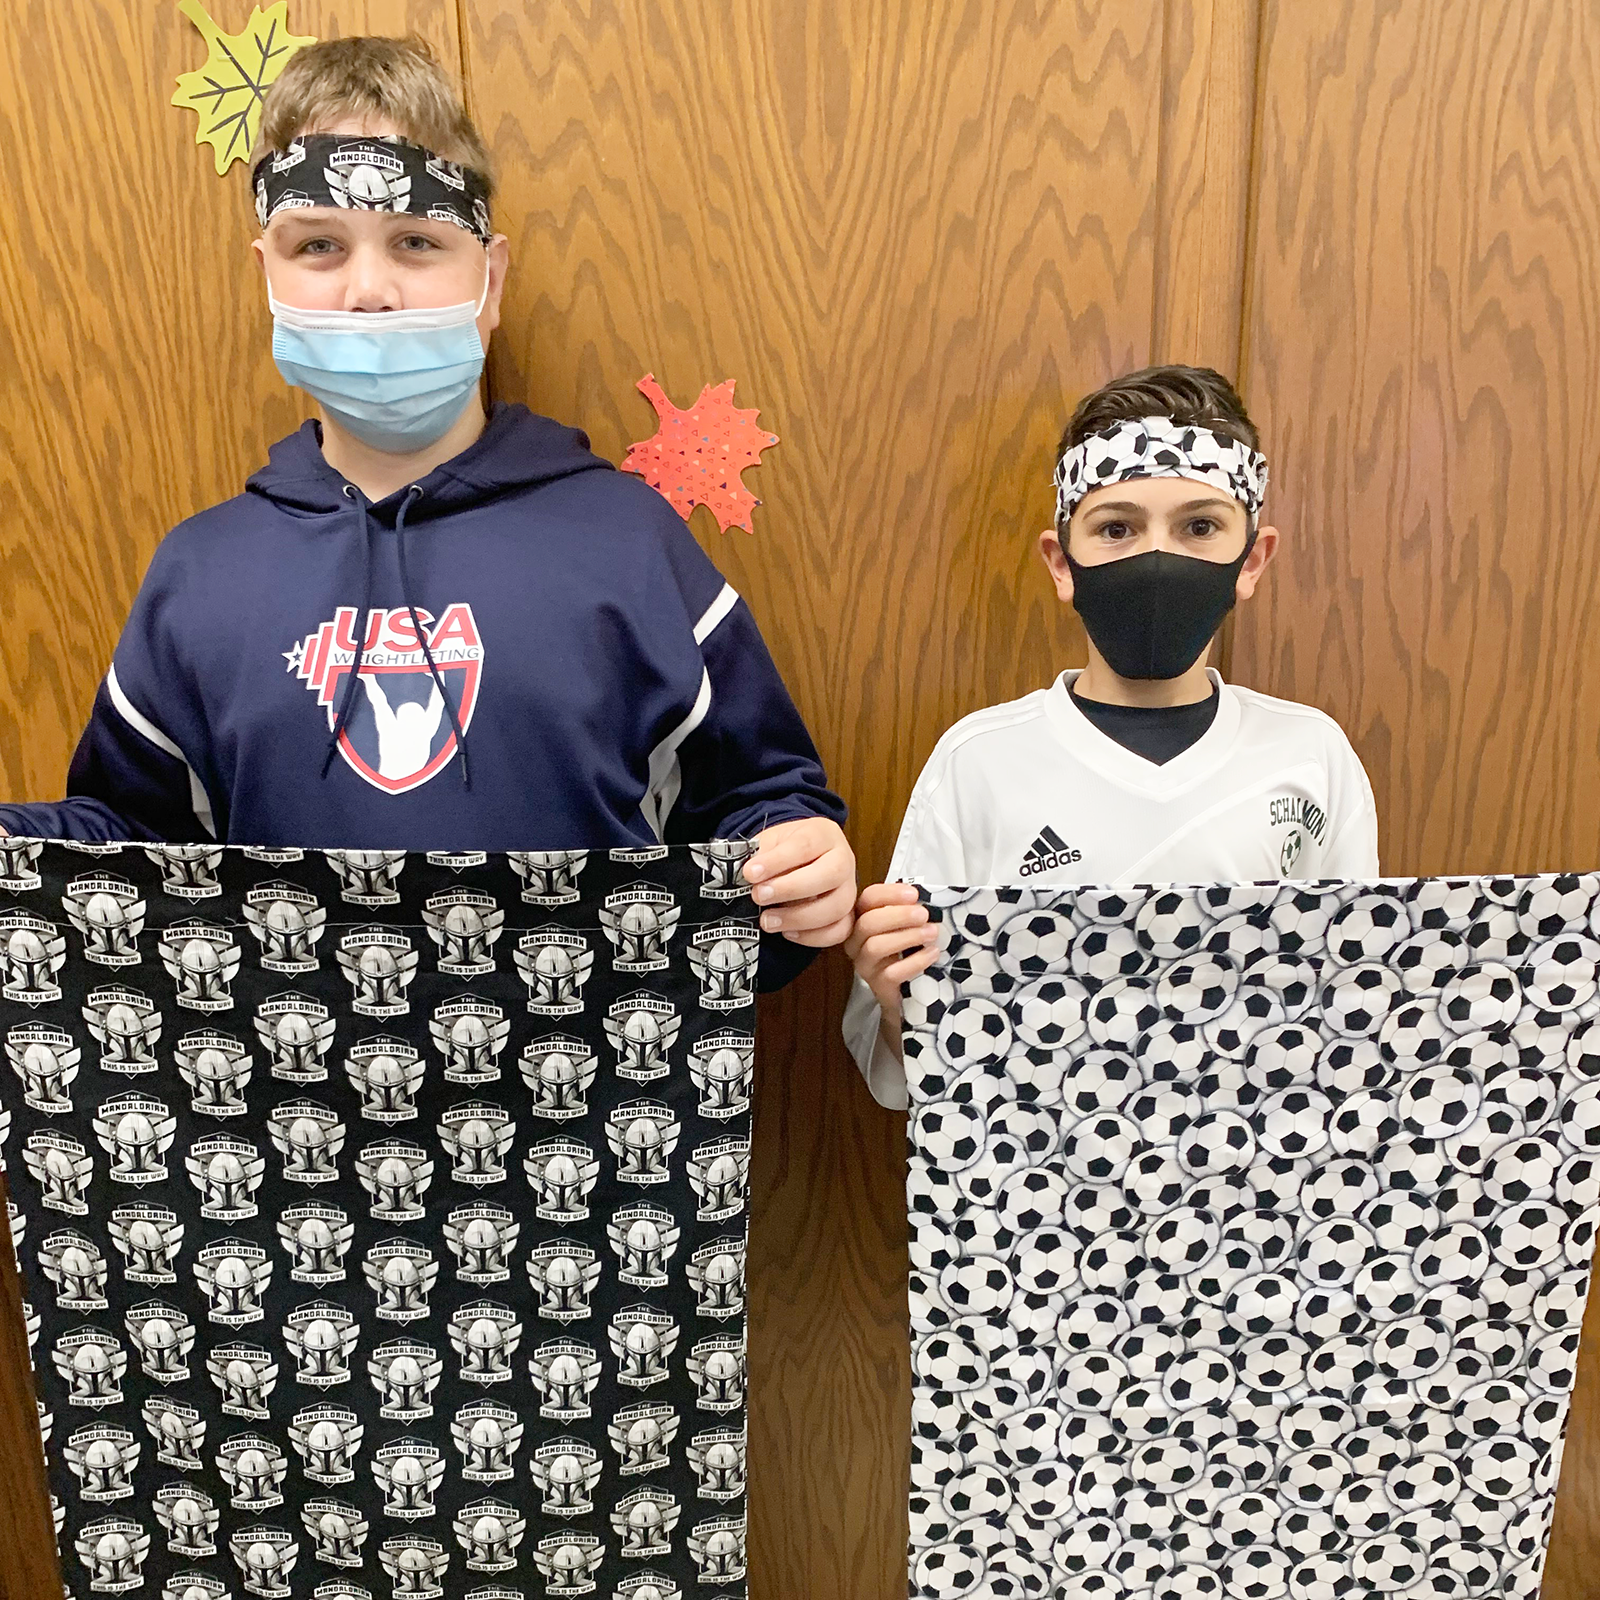 Students with pillowcase they made